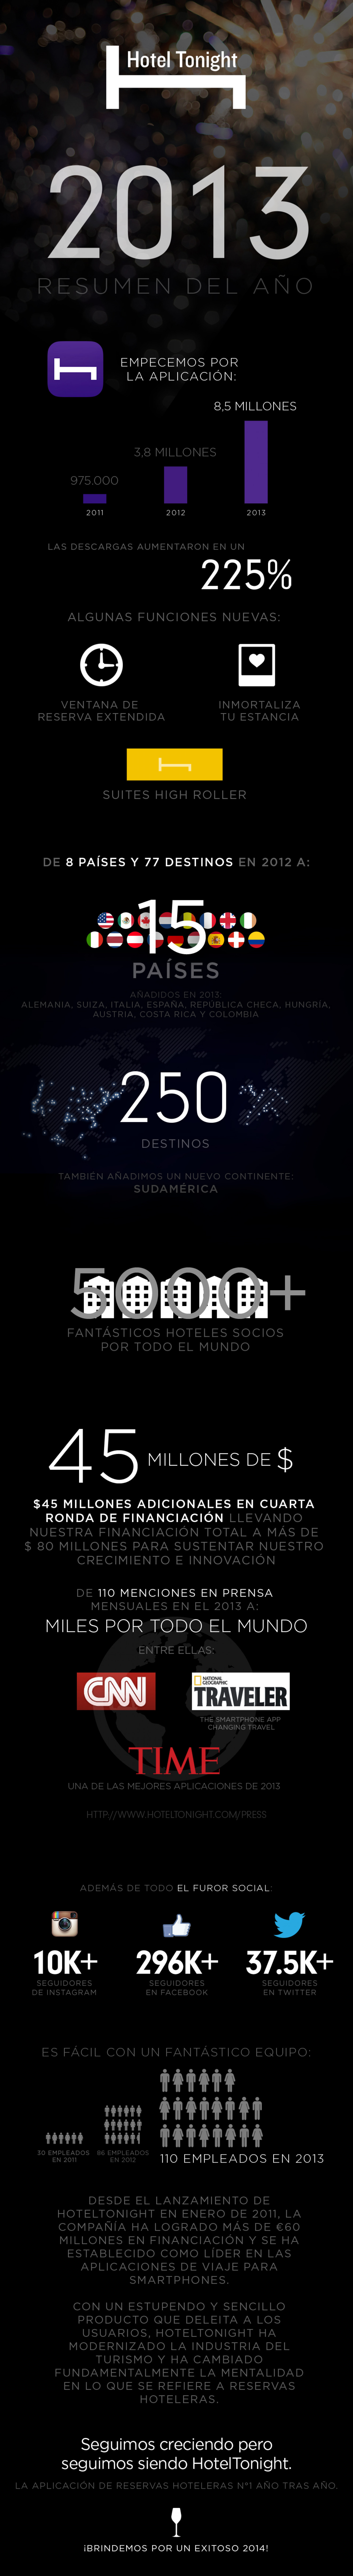 Hotel Tonight 2013 (Spanish) Infographic